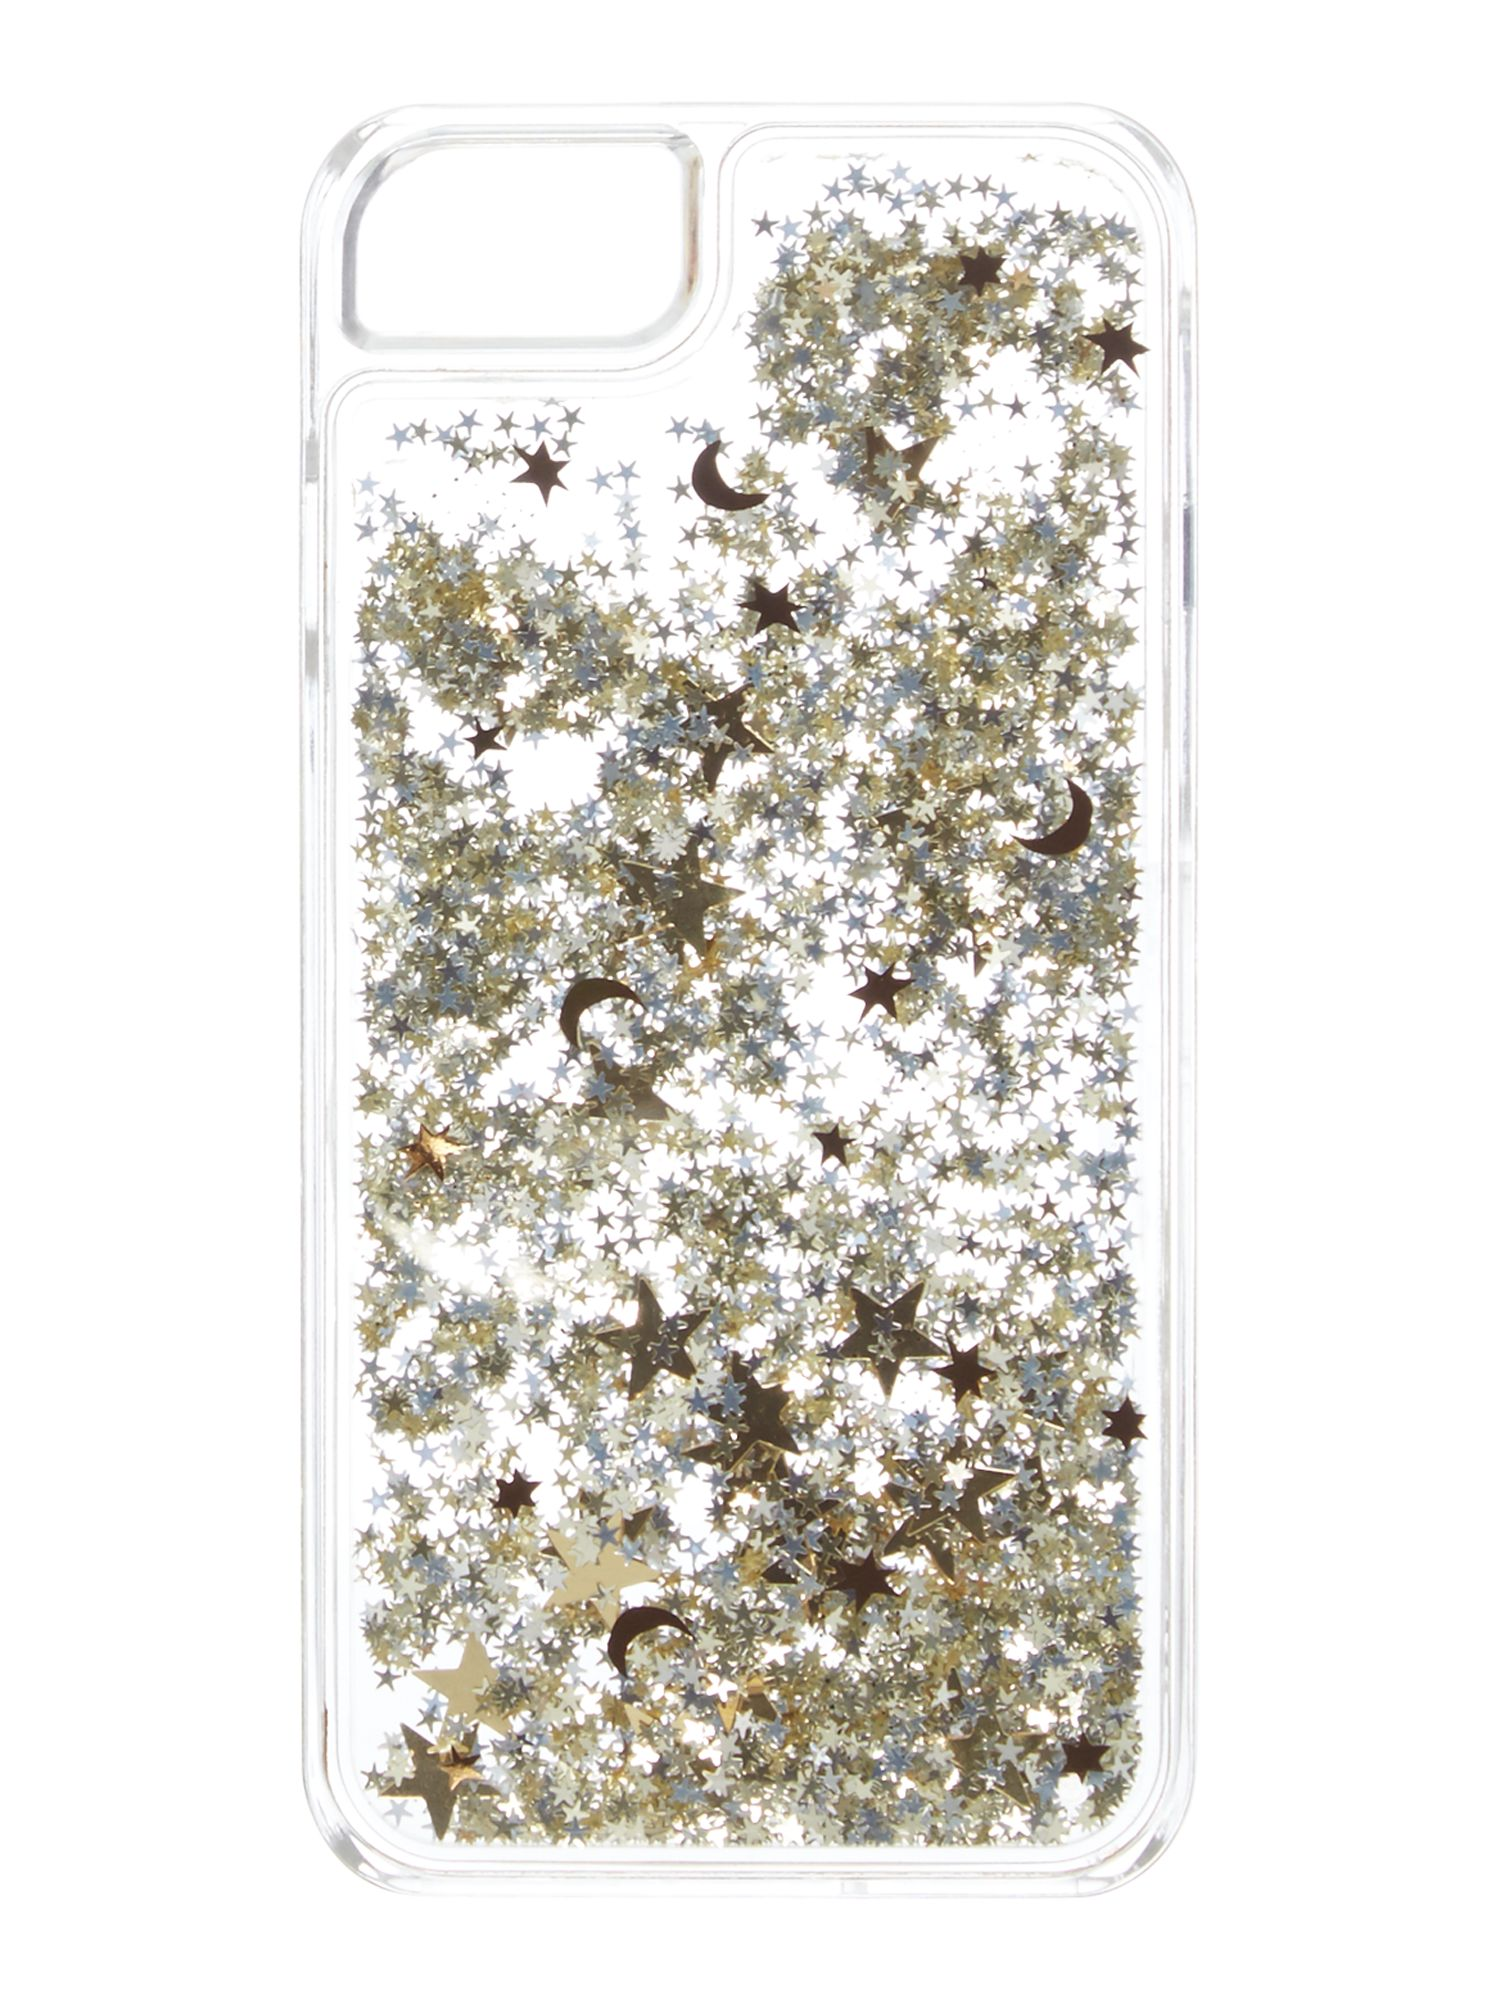 Therapy Glitter iPhone 6 and 7 case, Multi-Coloured